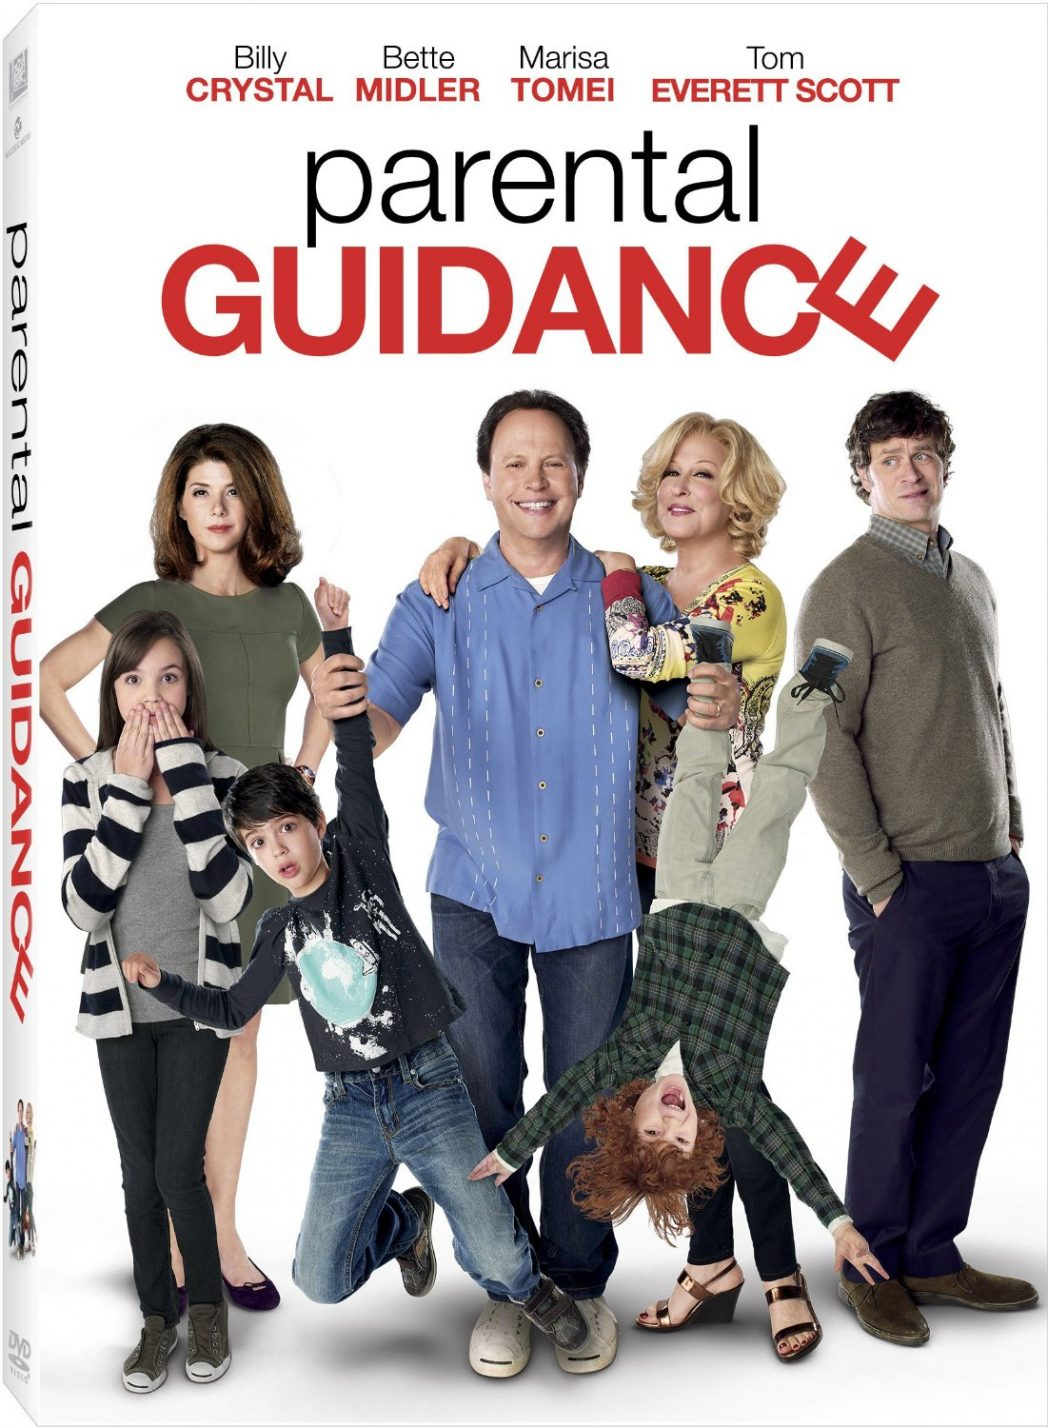 Want a really funny movie to watch? Parental Guidance is ... Funny Movies To Watch